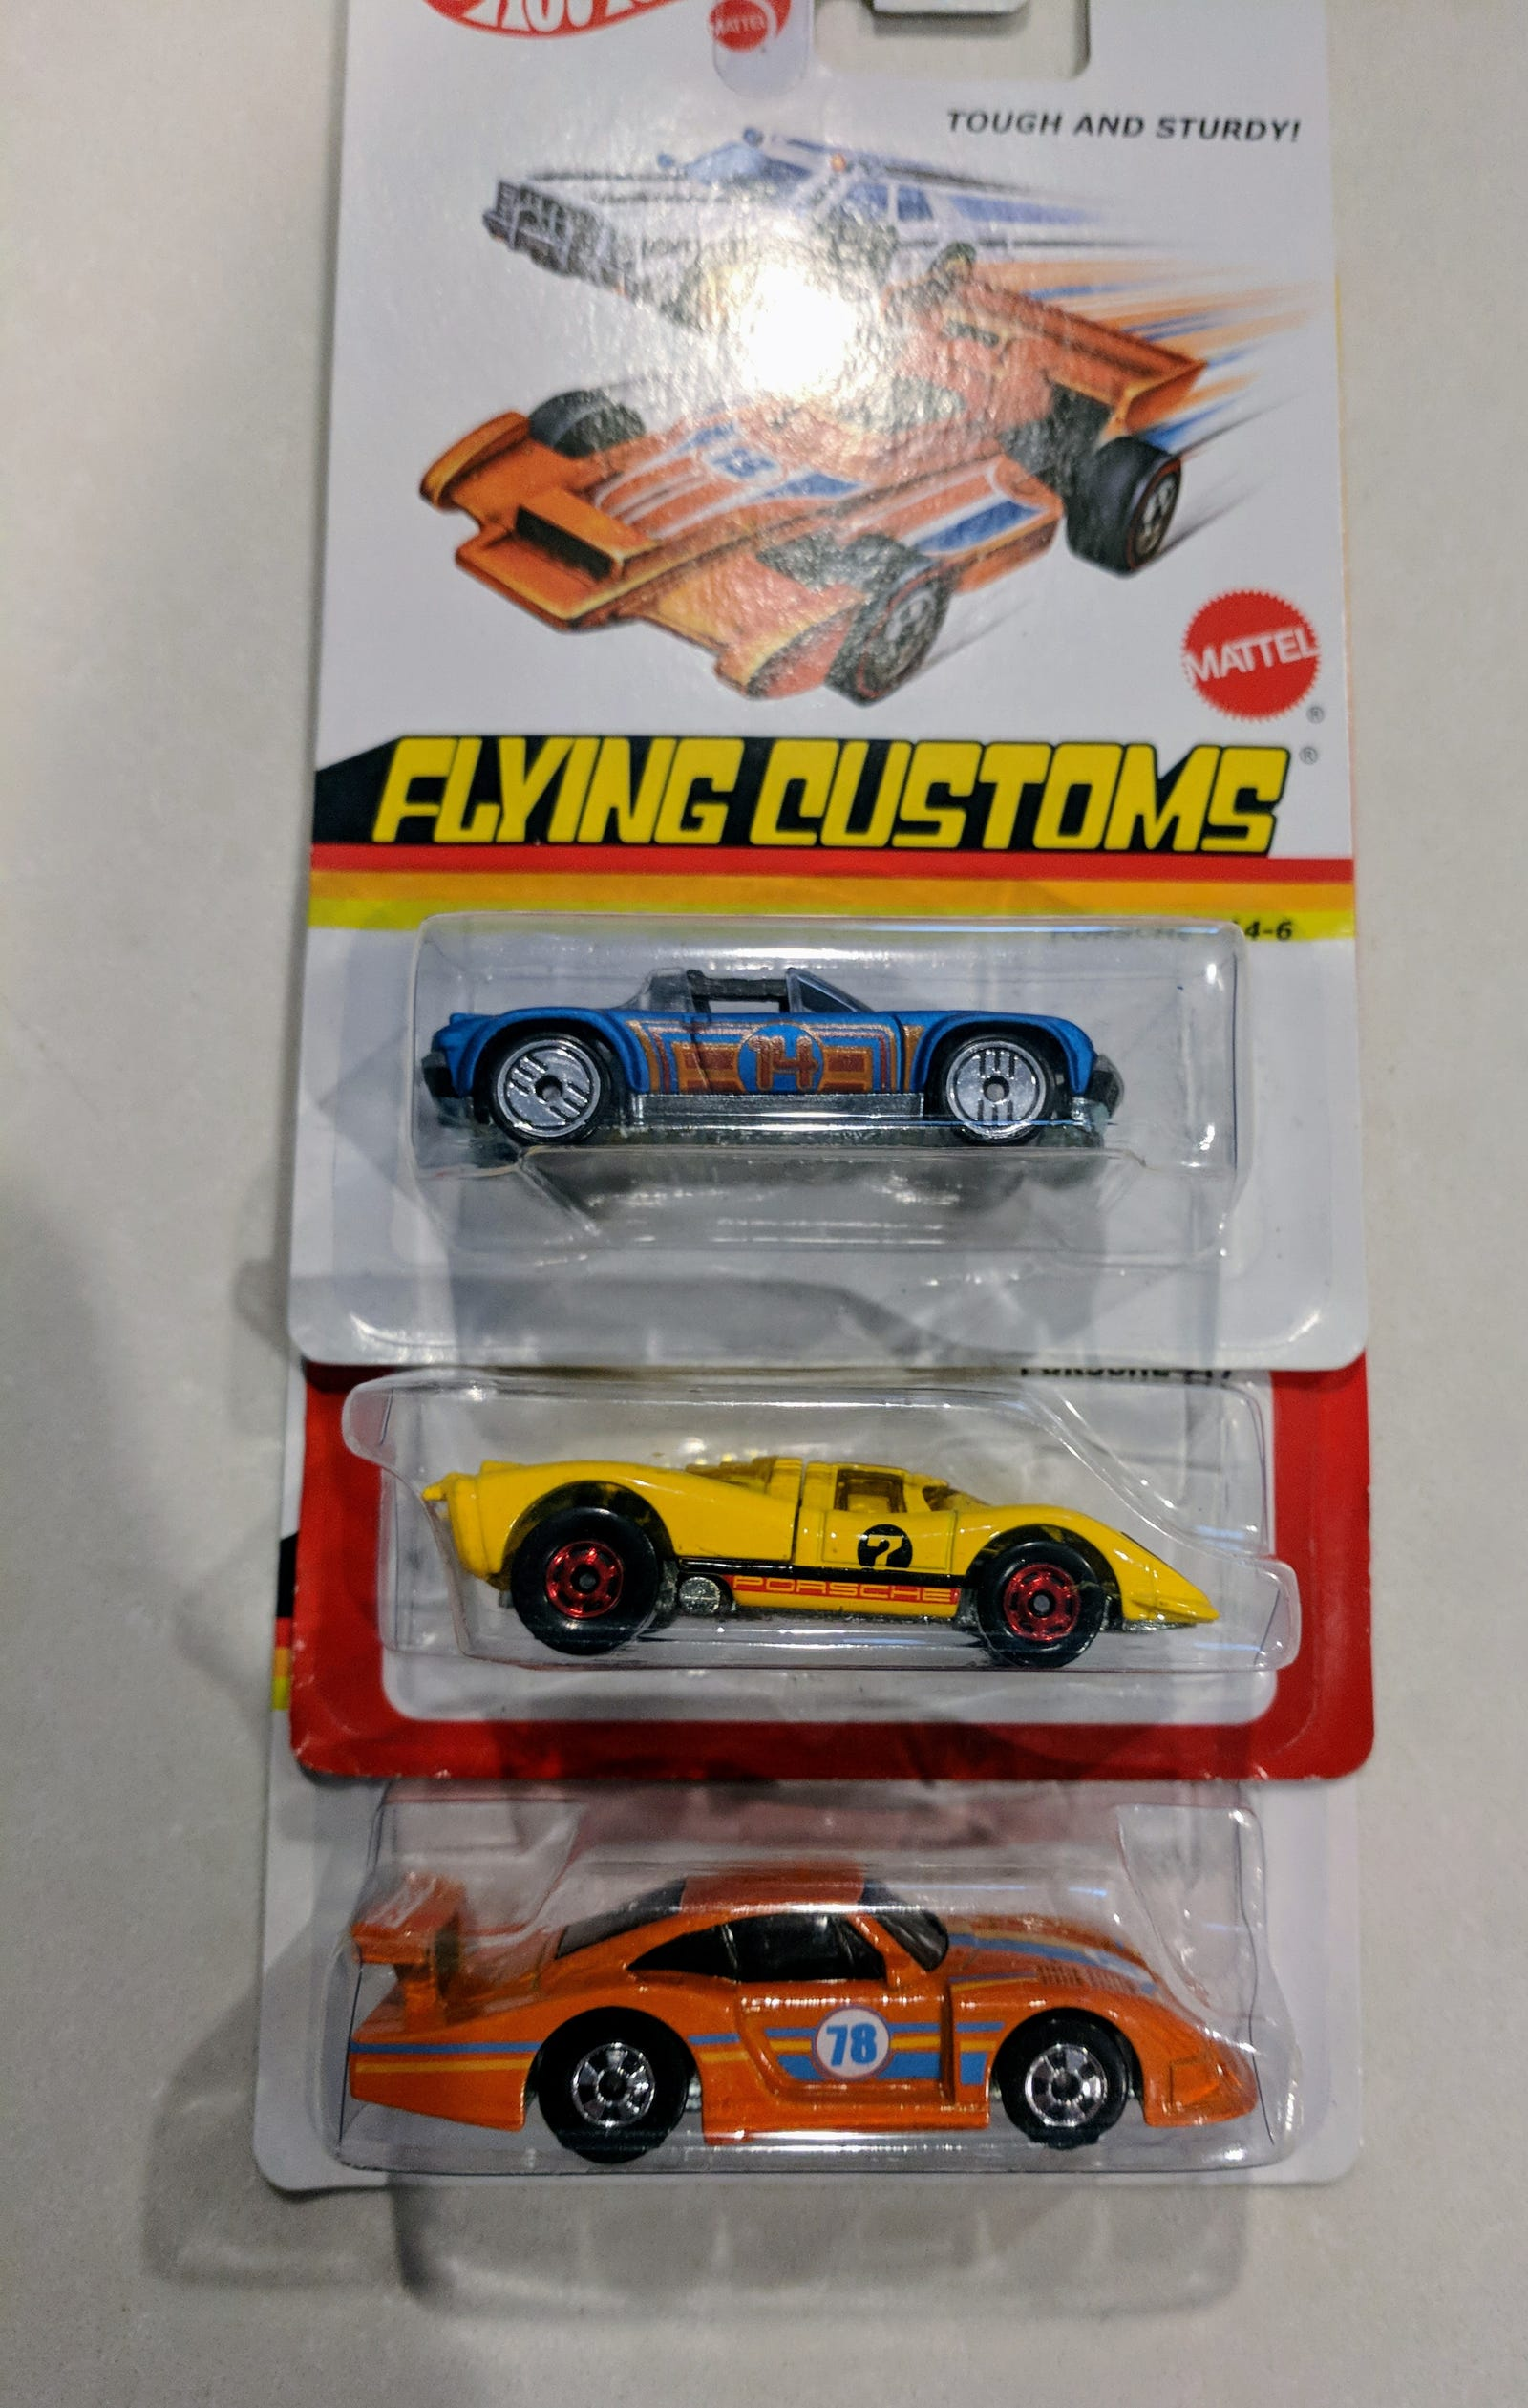 Lot 6: Porsches - $15 for 13 cars - Includes Flying Customs 914 and 935, Hot Ones 917...